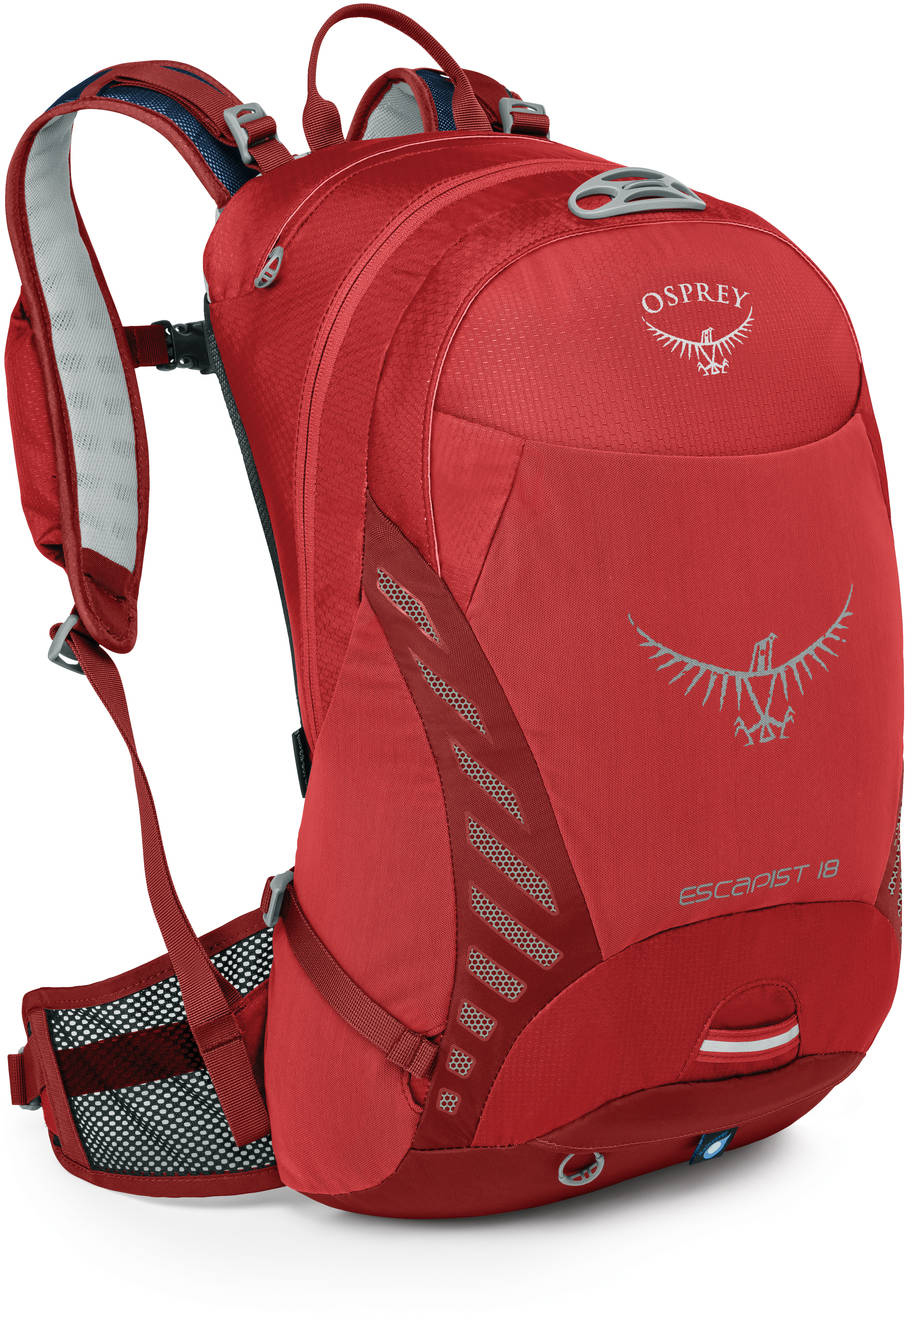 Велорюкзаки Велорюкзак Osprey Escapist 18 Escapist_18_Side_Cayenne_Red_web.jpg